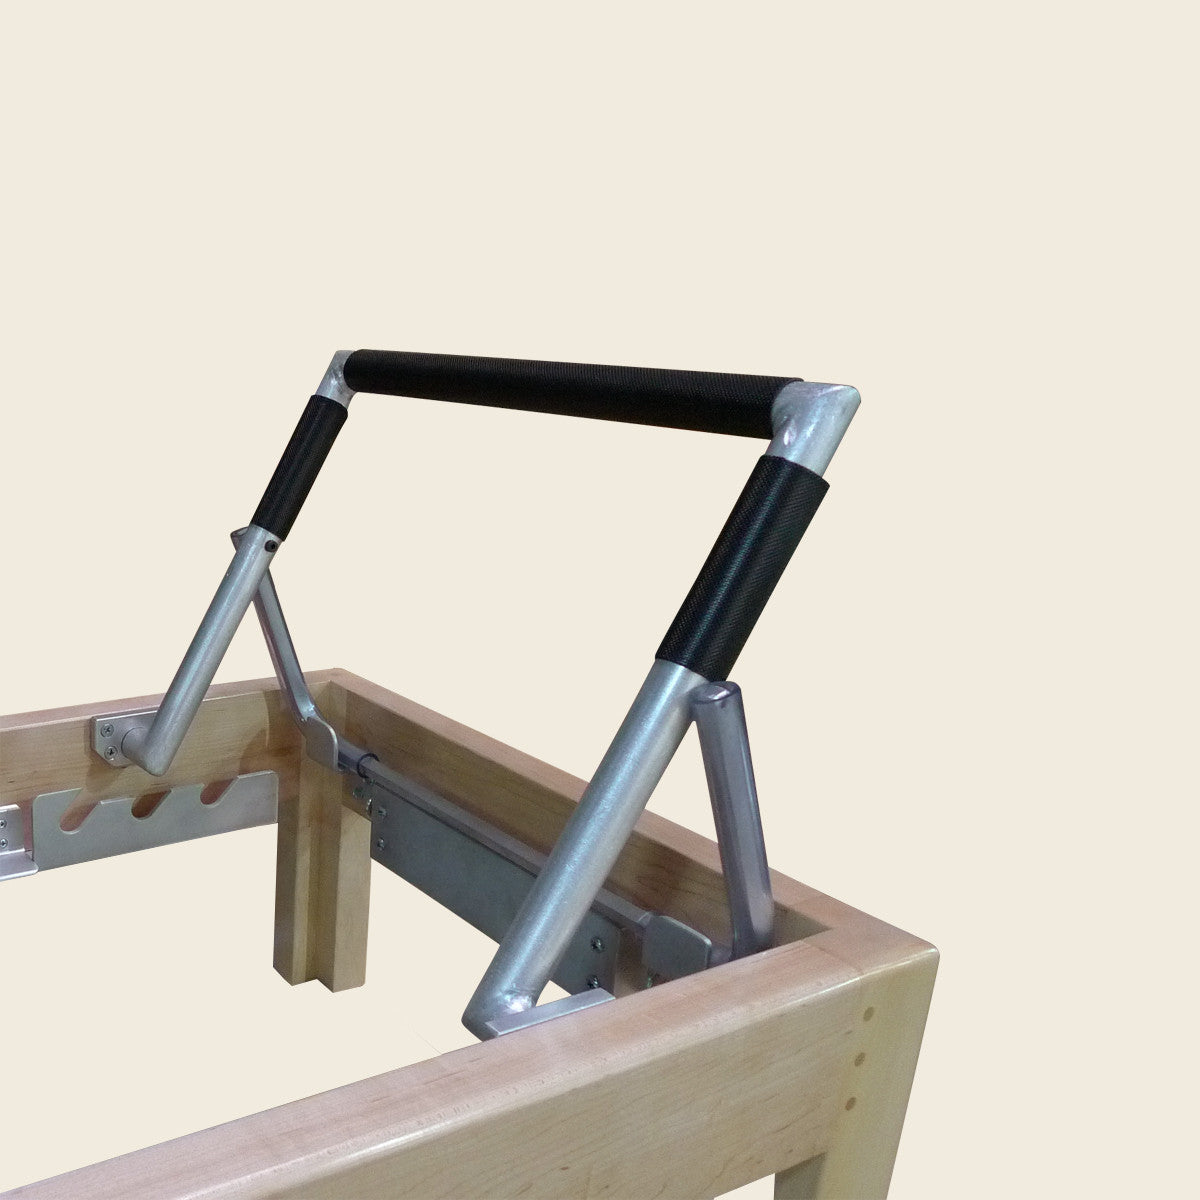 Direct Contact Foot Bar Cover For Reformer